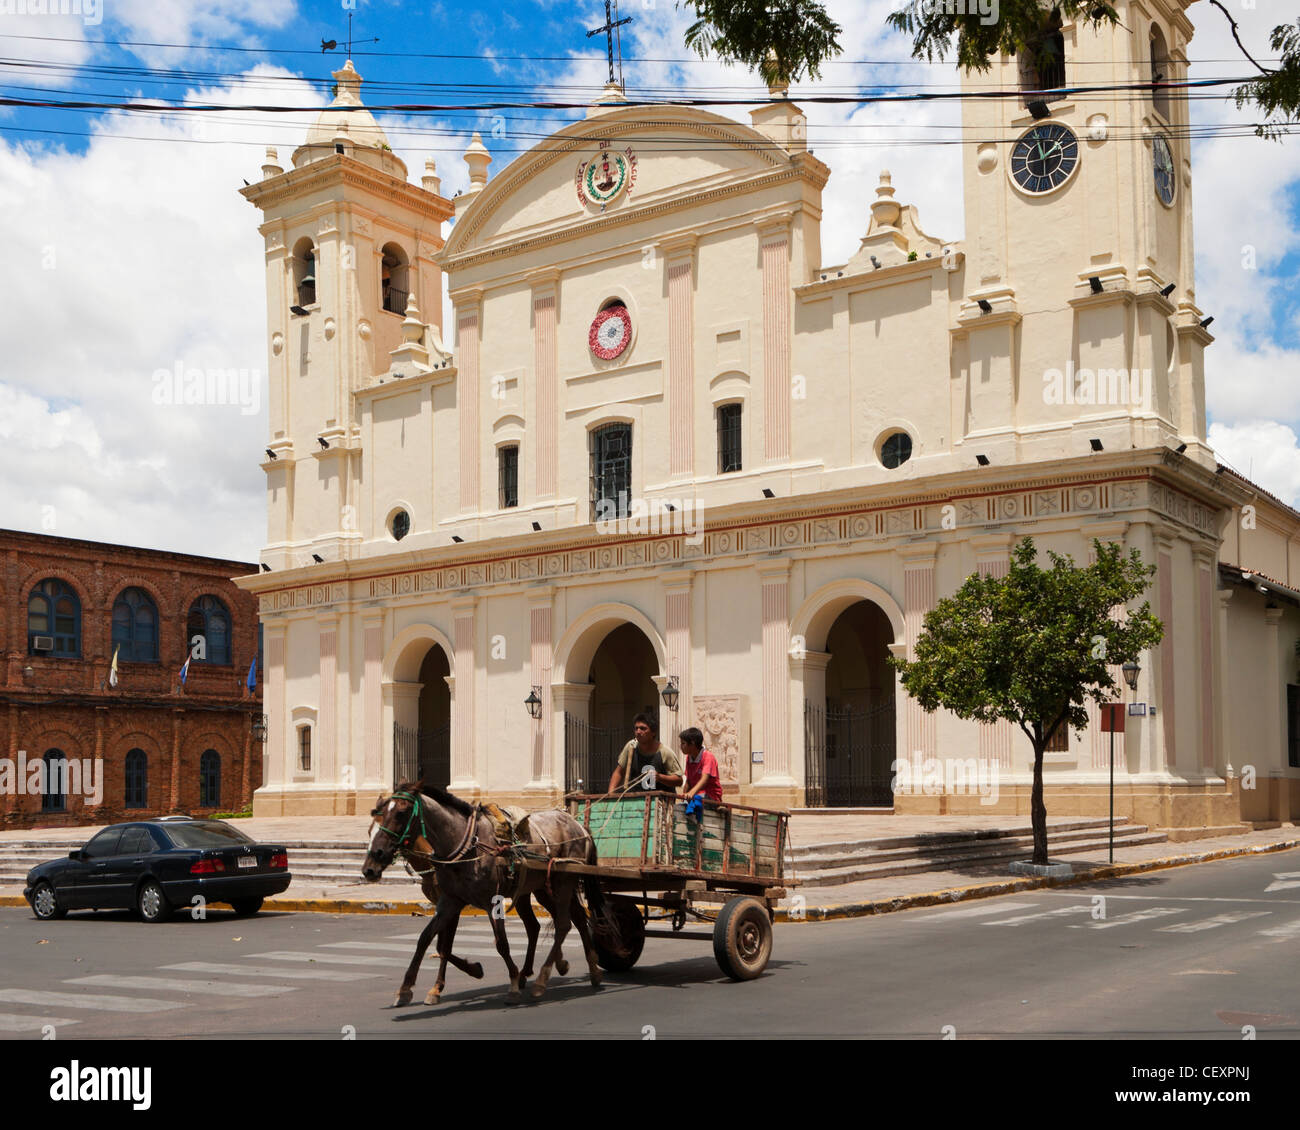 Paraguay, the capital. Asuncion: sights and photos 24